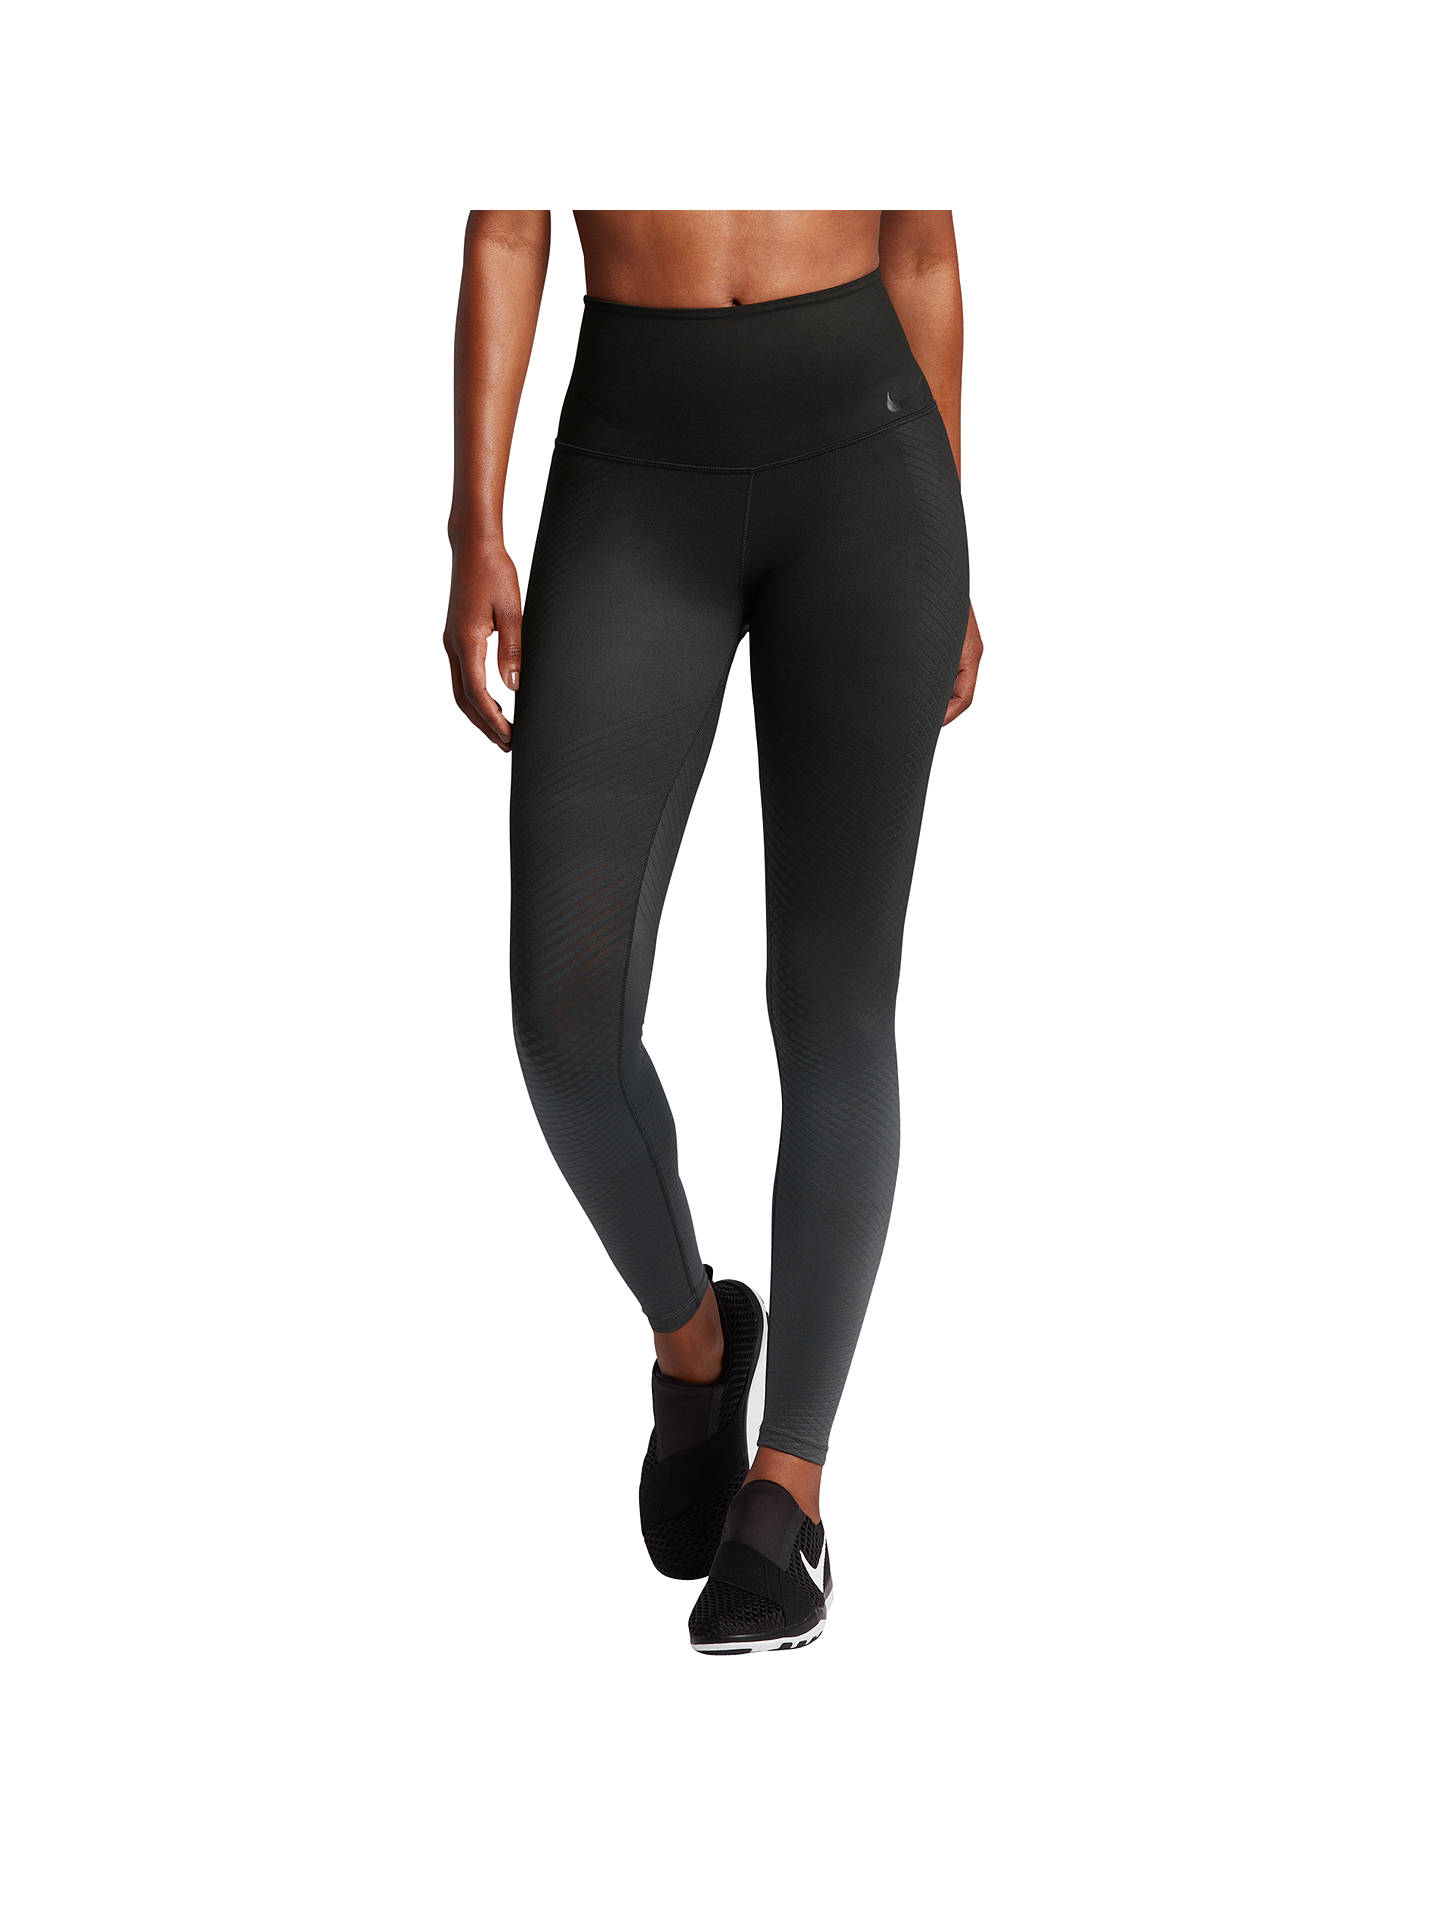 368058097c6b5 Buy Nike Zonal Strength Training Tights, Black, XS Online at johnlewis.com  ...